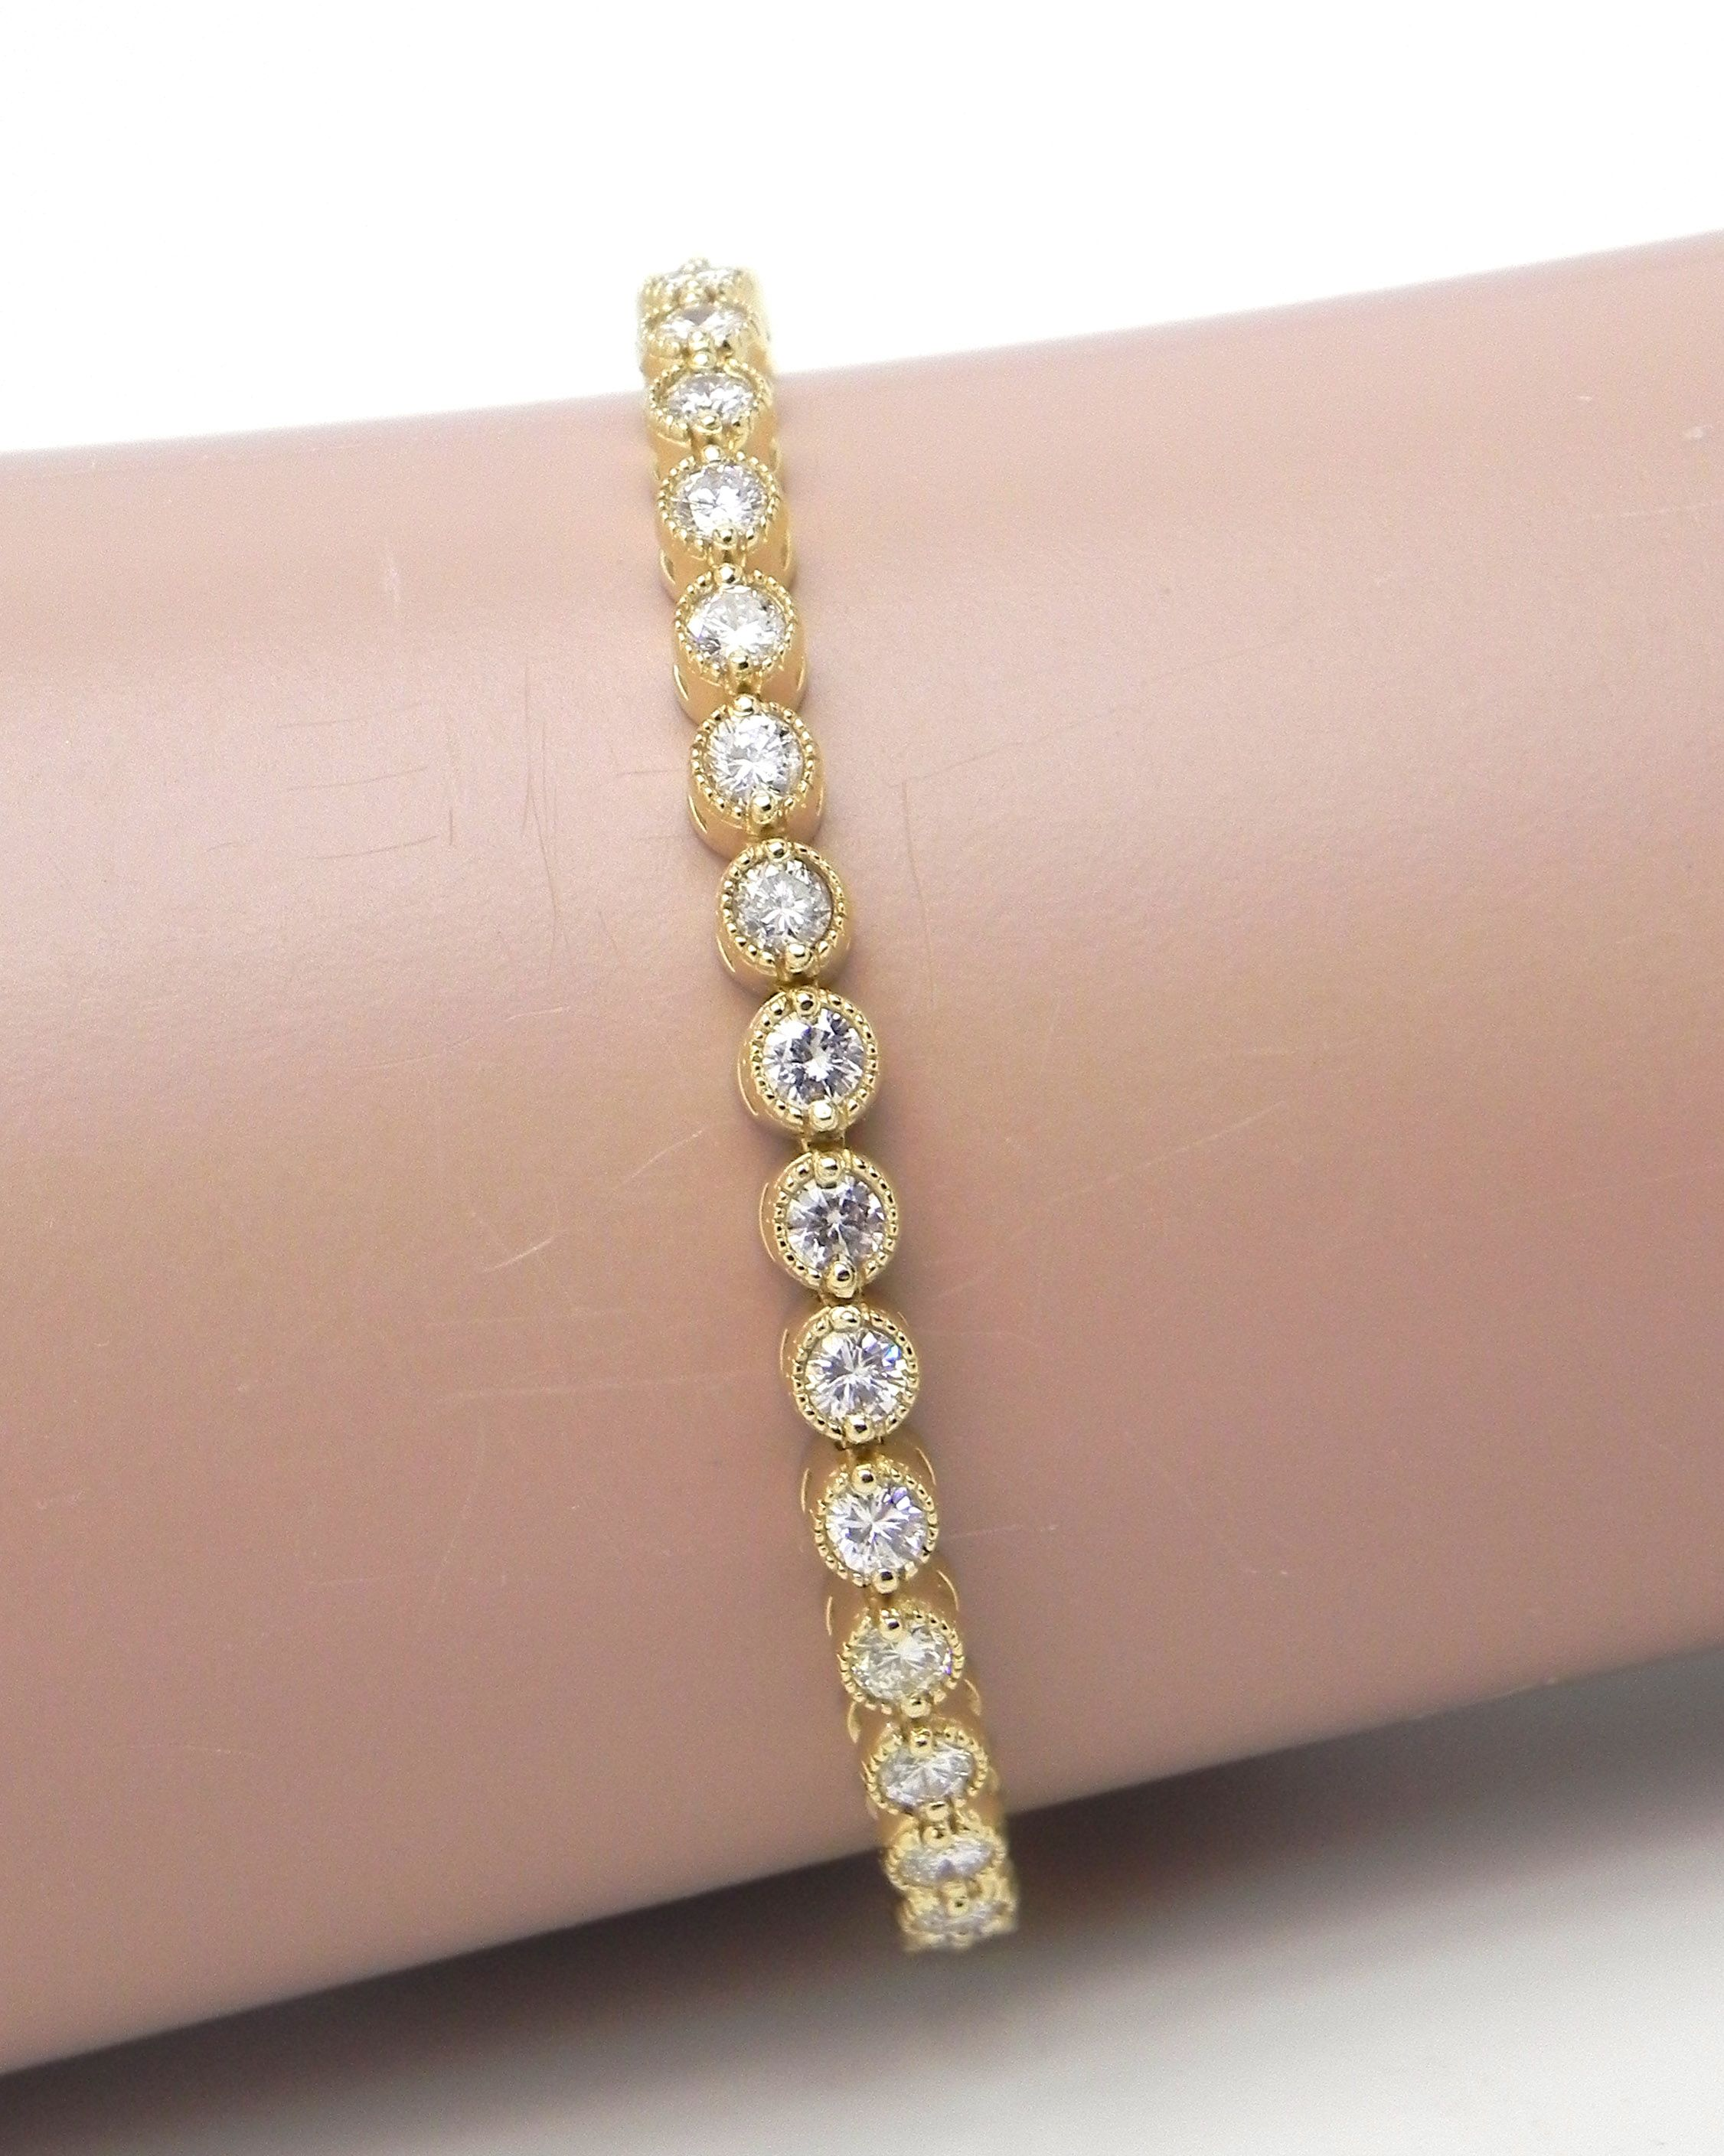 bracelet gold white diamond s branded jewelry women non tennis